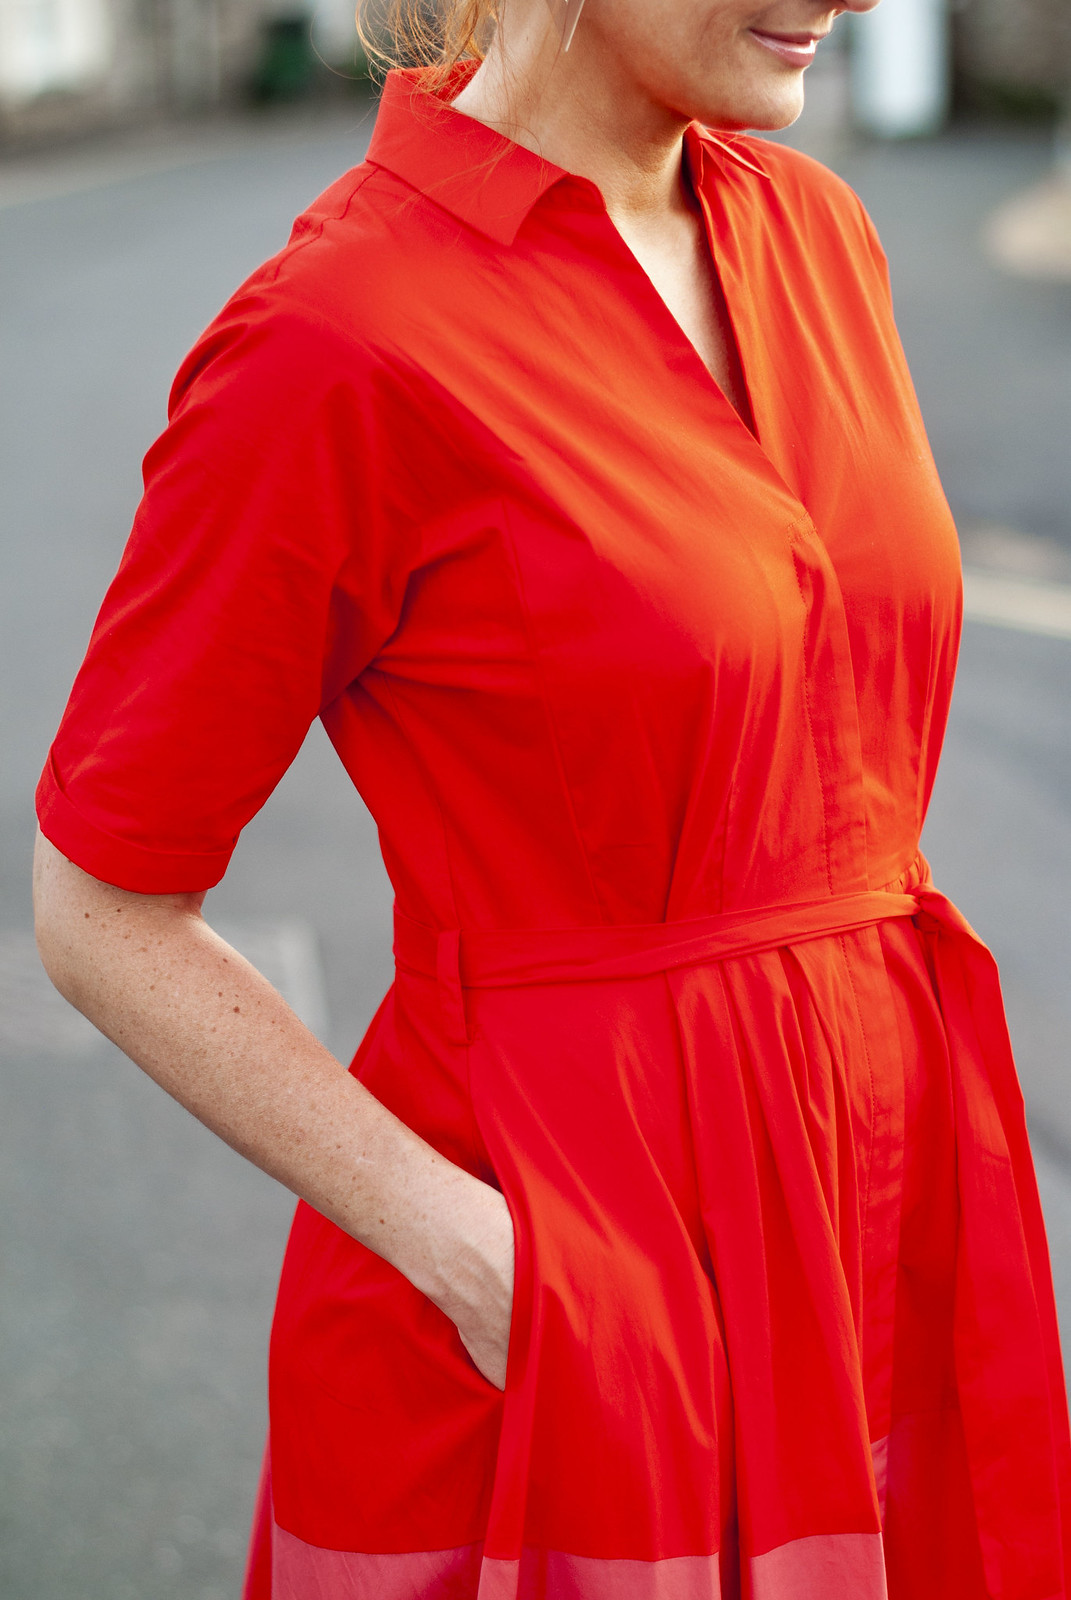 The Perfect Bold, Smart Summer Dress: A Red Ombré Shirt Dress | Not Dressed As Lamb, fashion for women over 40